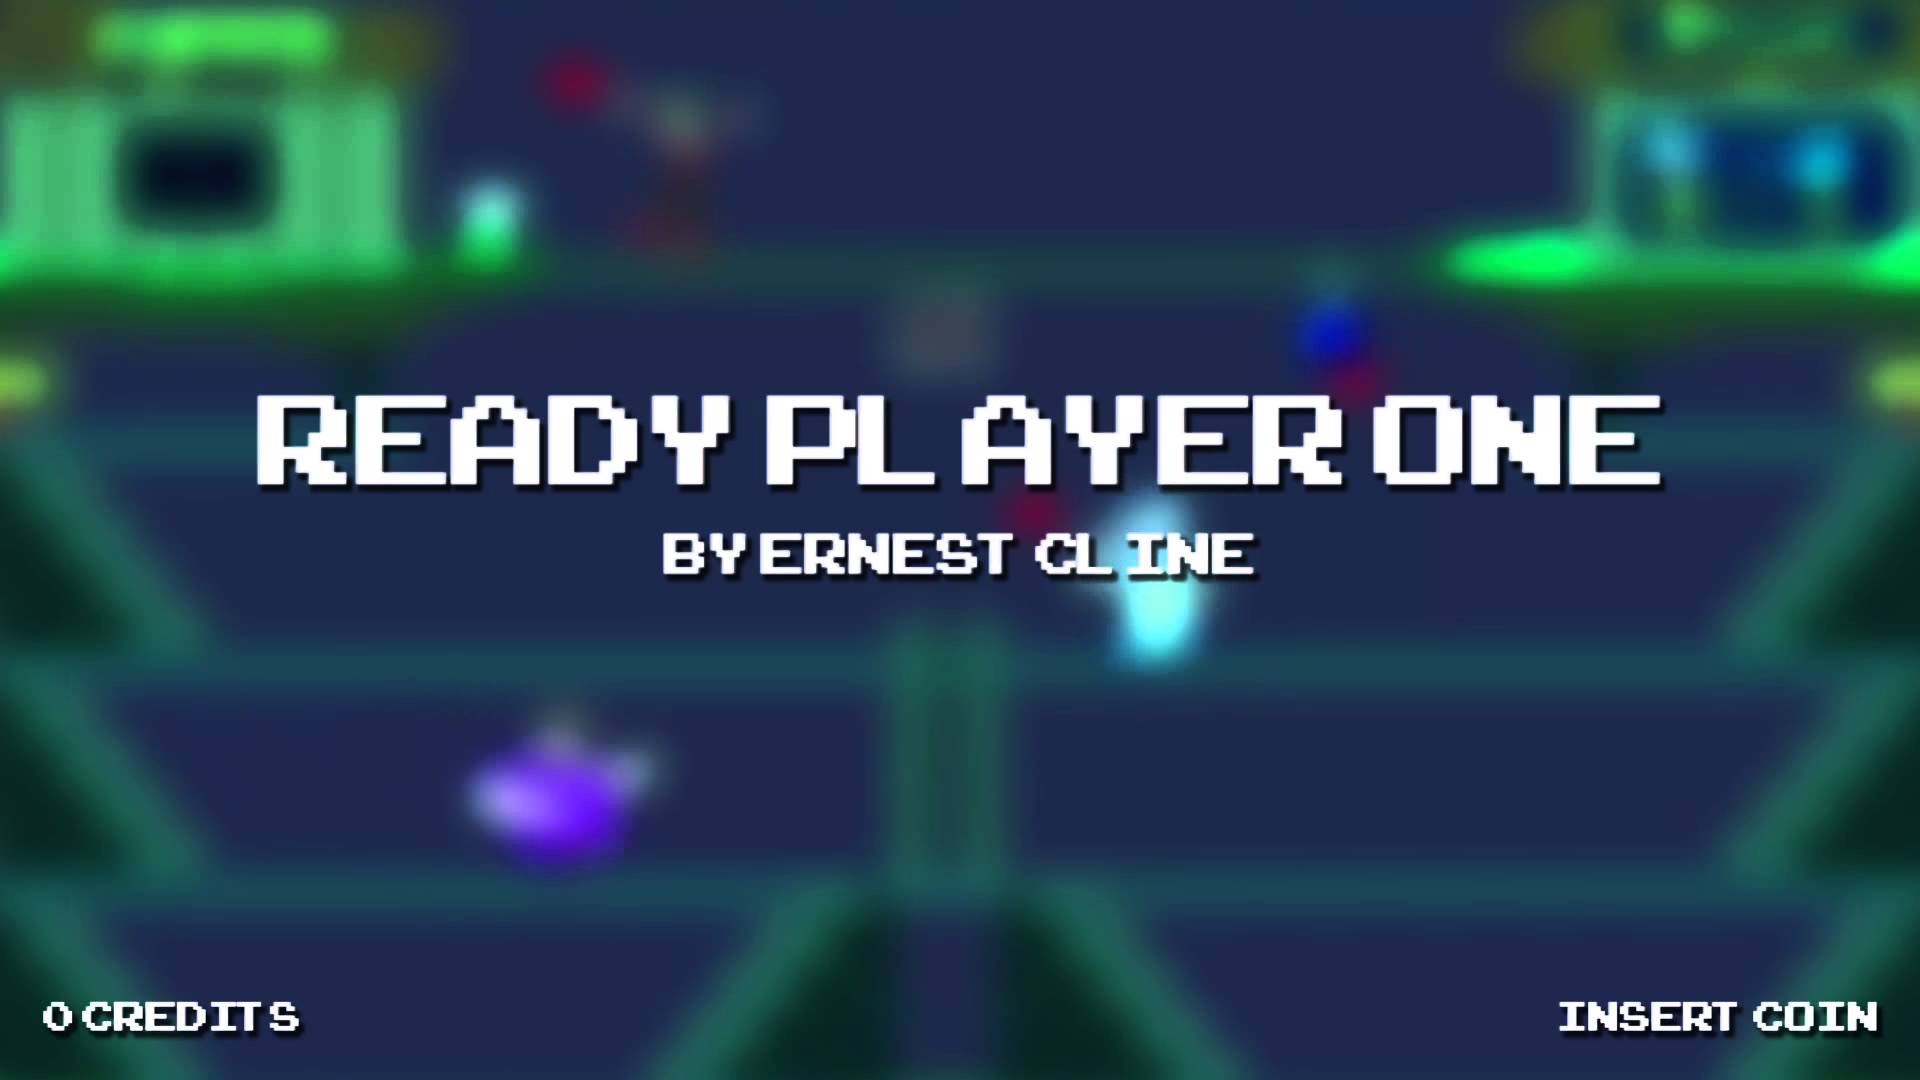 STEVEN SPIELBERG AND ERNEST CLINE WANT TO PUT YOU IN 'READY PLAYER ONE'